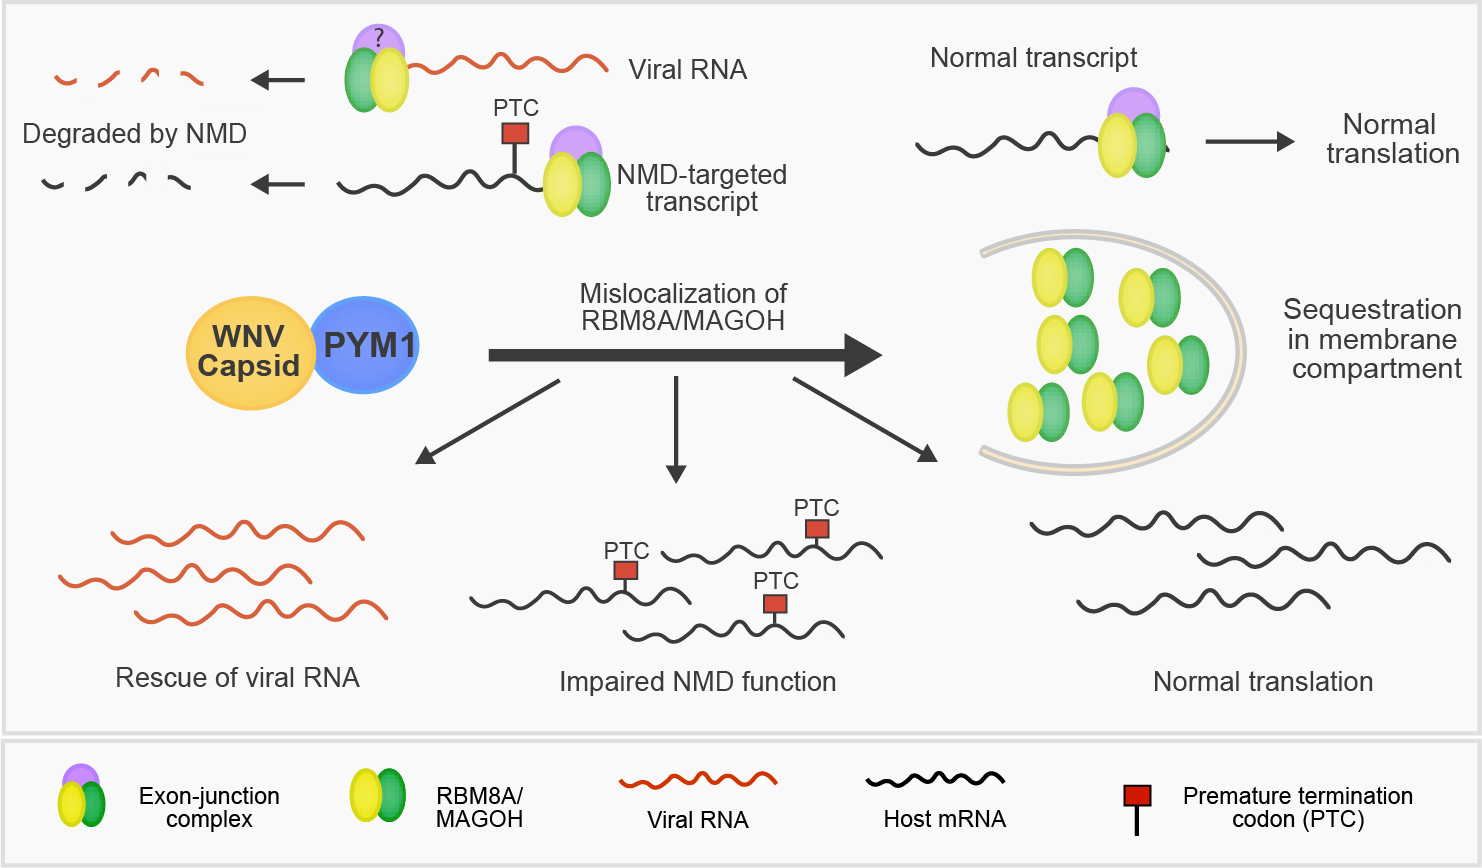 Role of PYM1 and NMD in flaviviral infection.